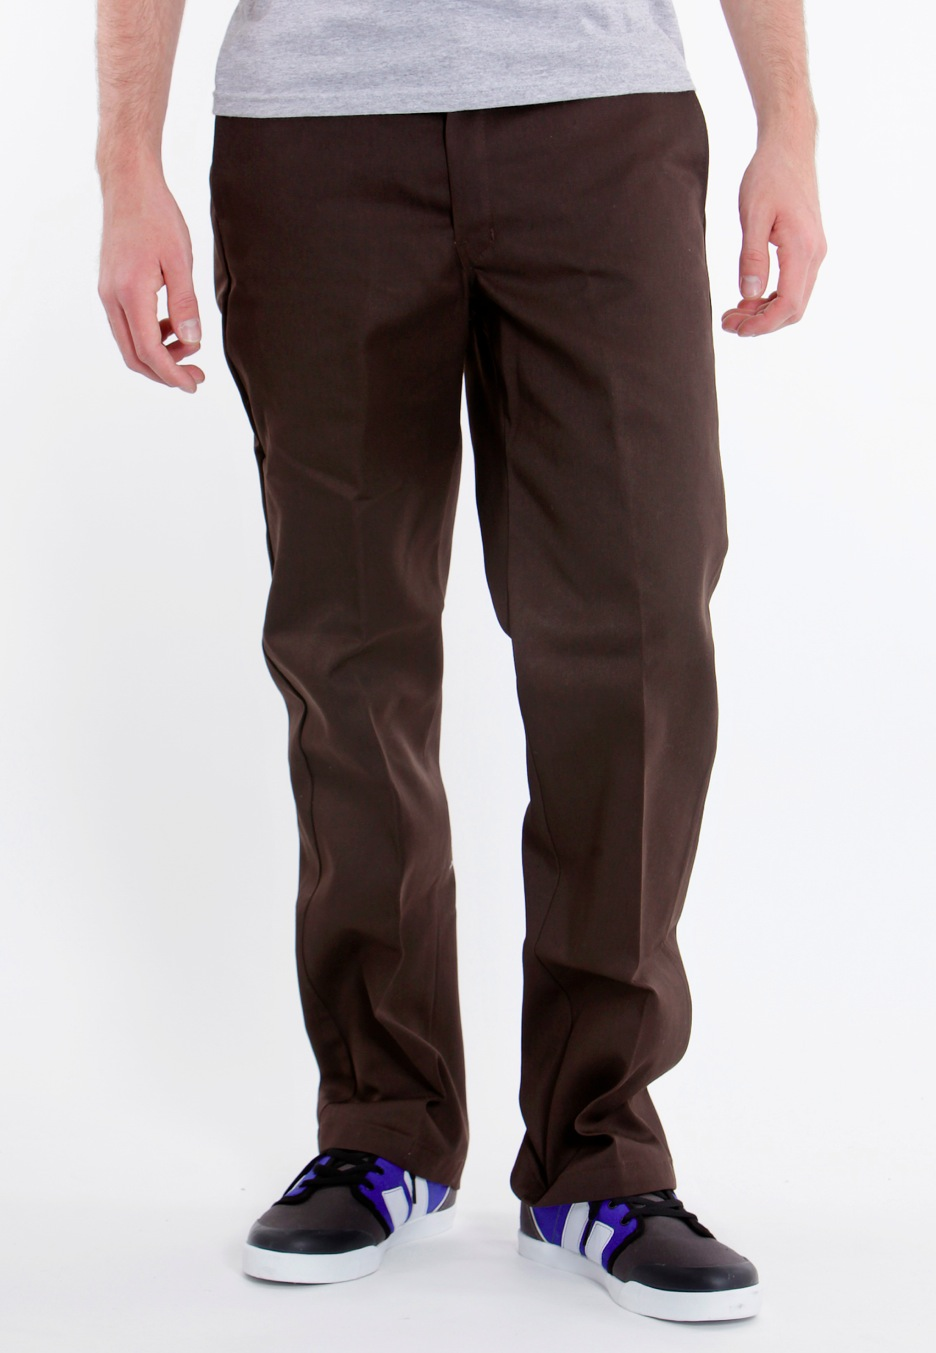 Enjoy free shipping and easy returns every day at Kohl's. Find great deals on Womens Brown Pants at Kohl's today!